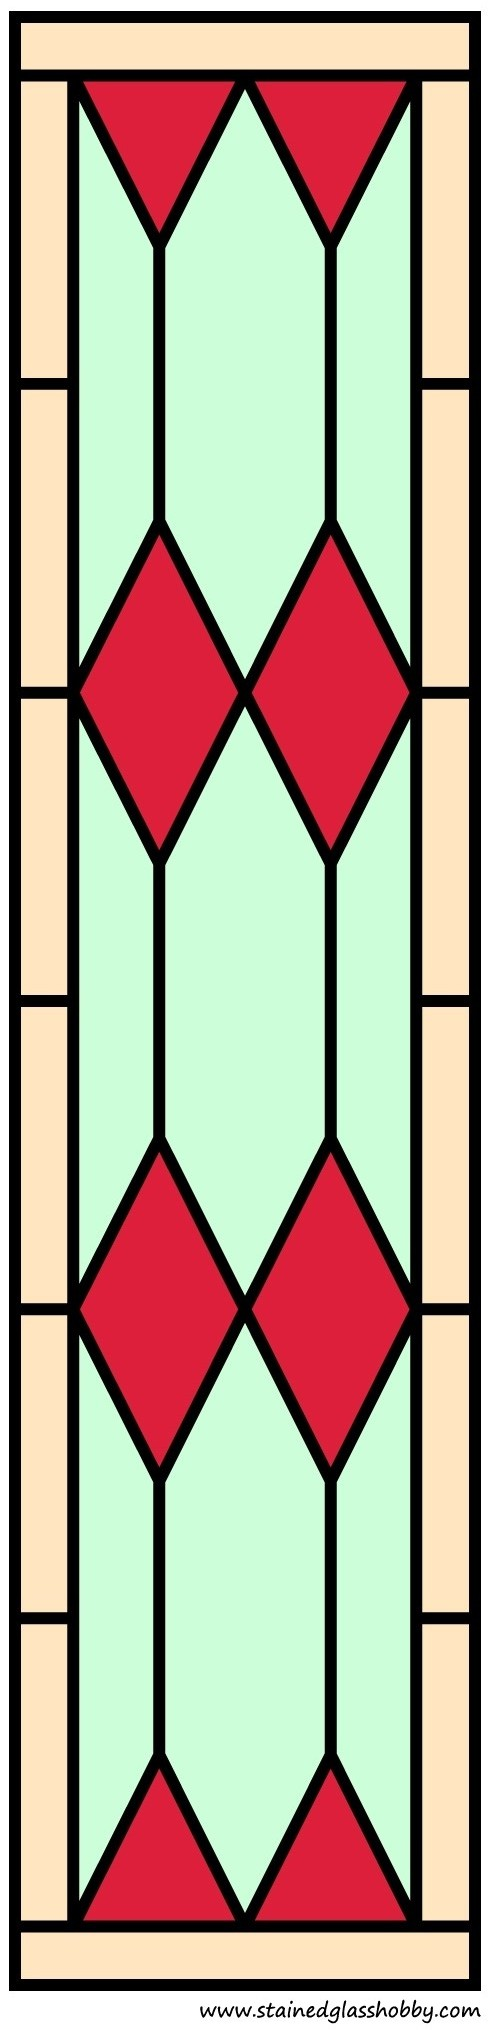 Color stained glass diamond shape panel design with border